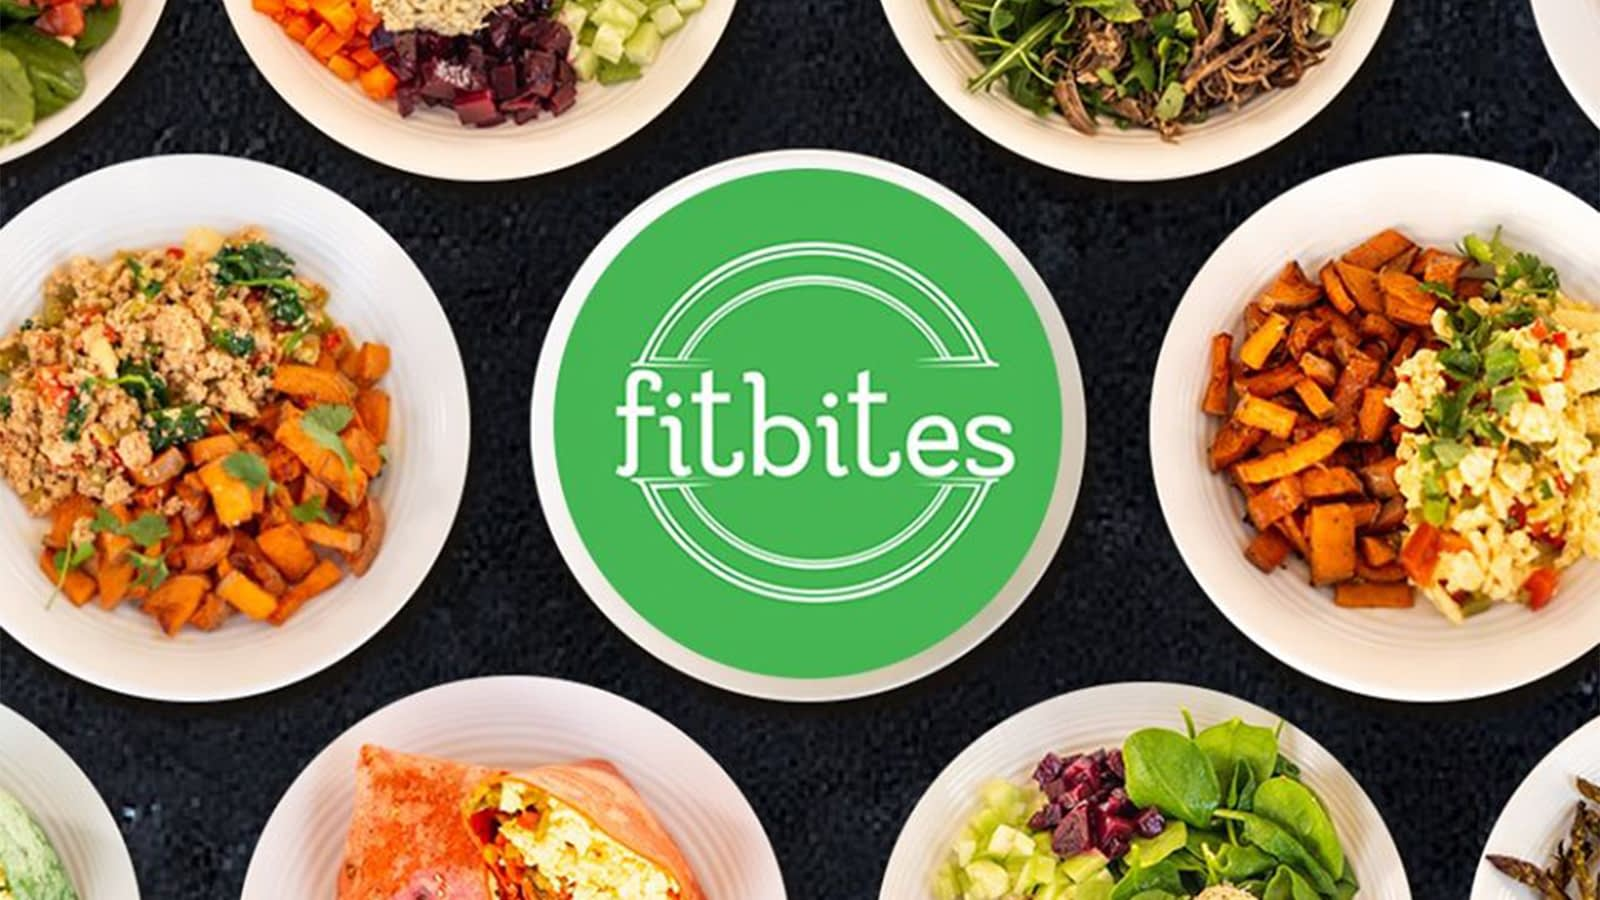 Fitbites – Fresh, flavorful, and fun food for life